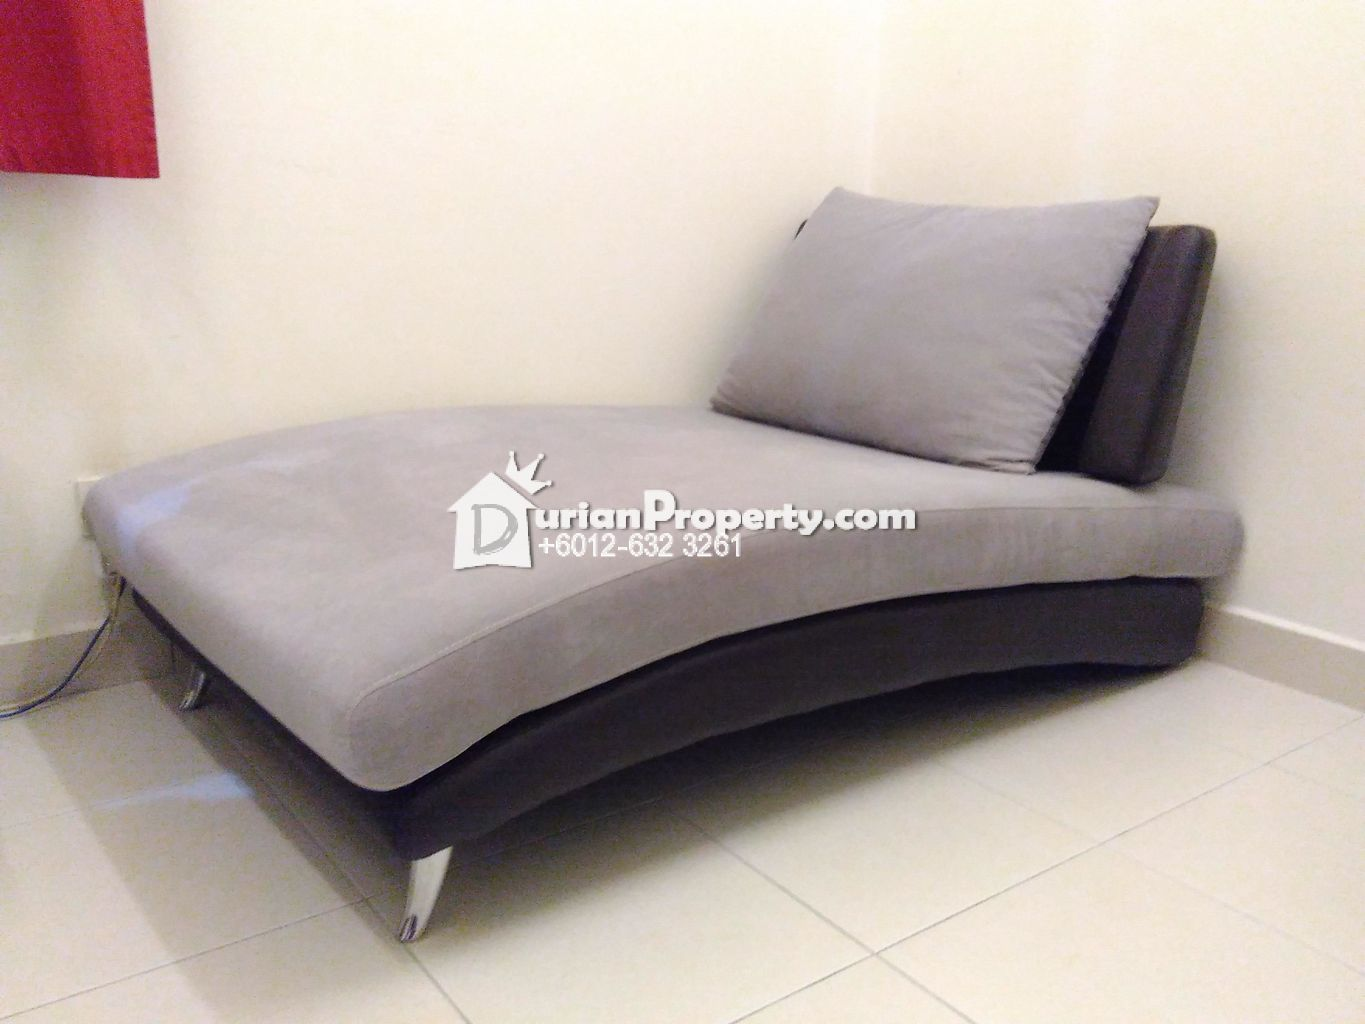 Daybed for sale For Sale